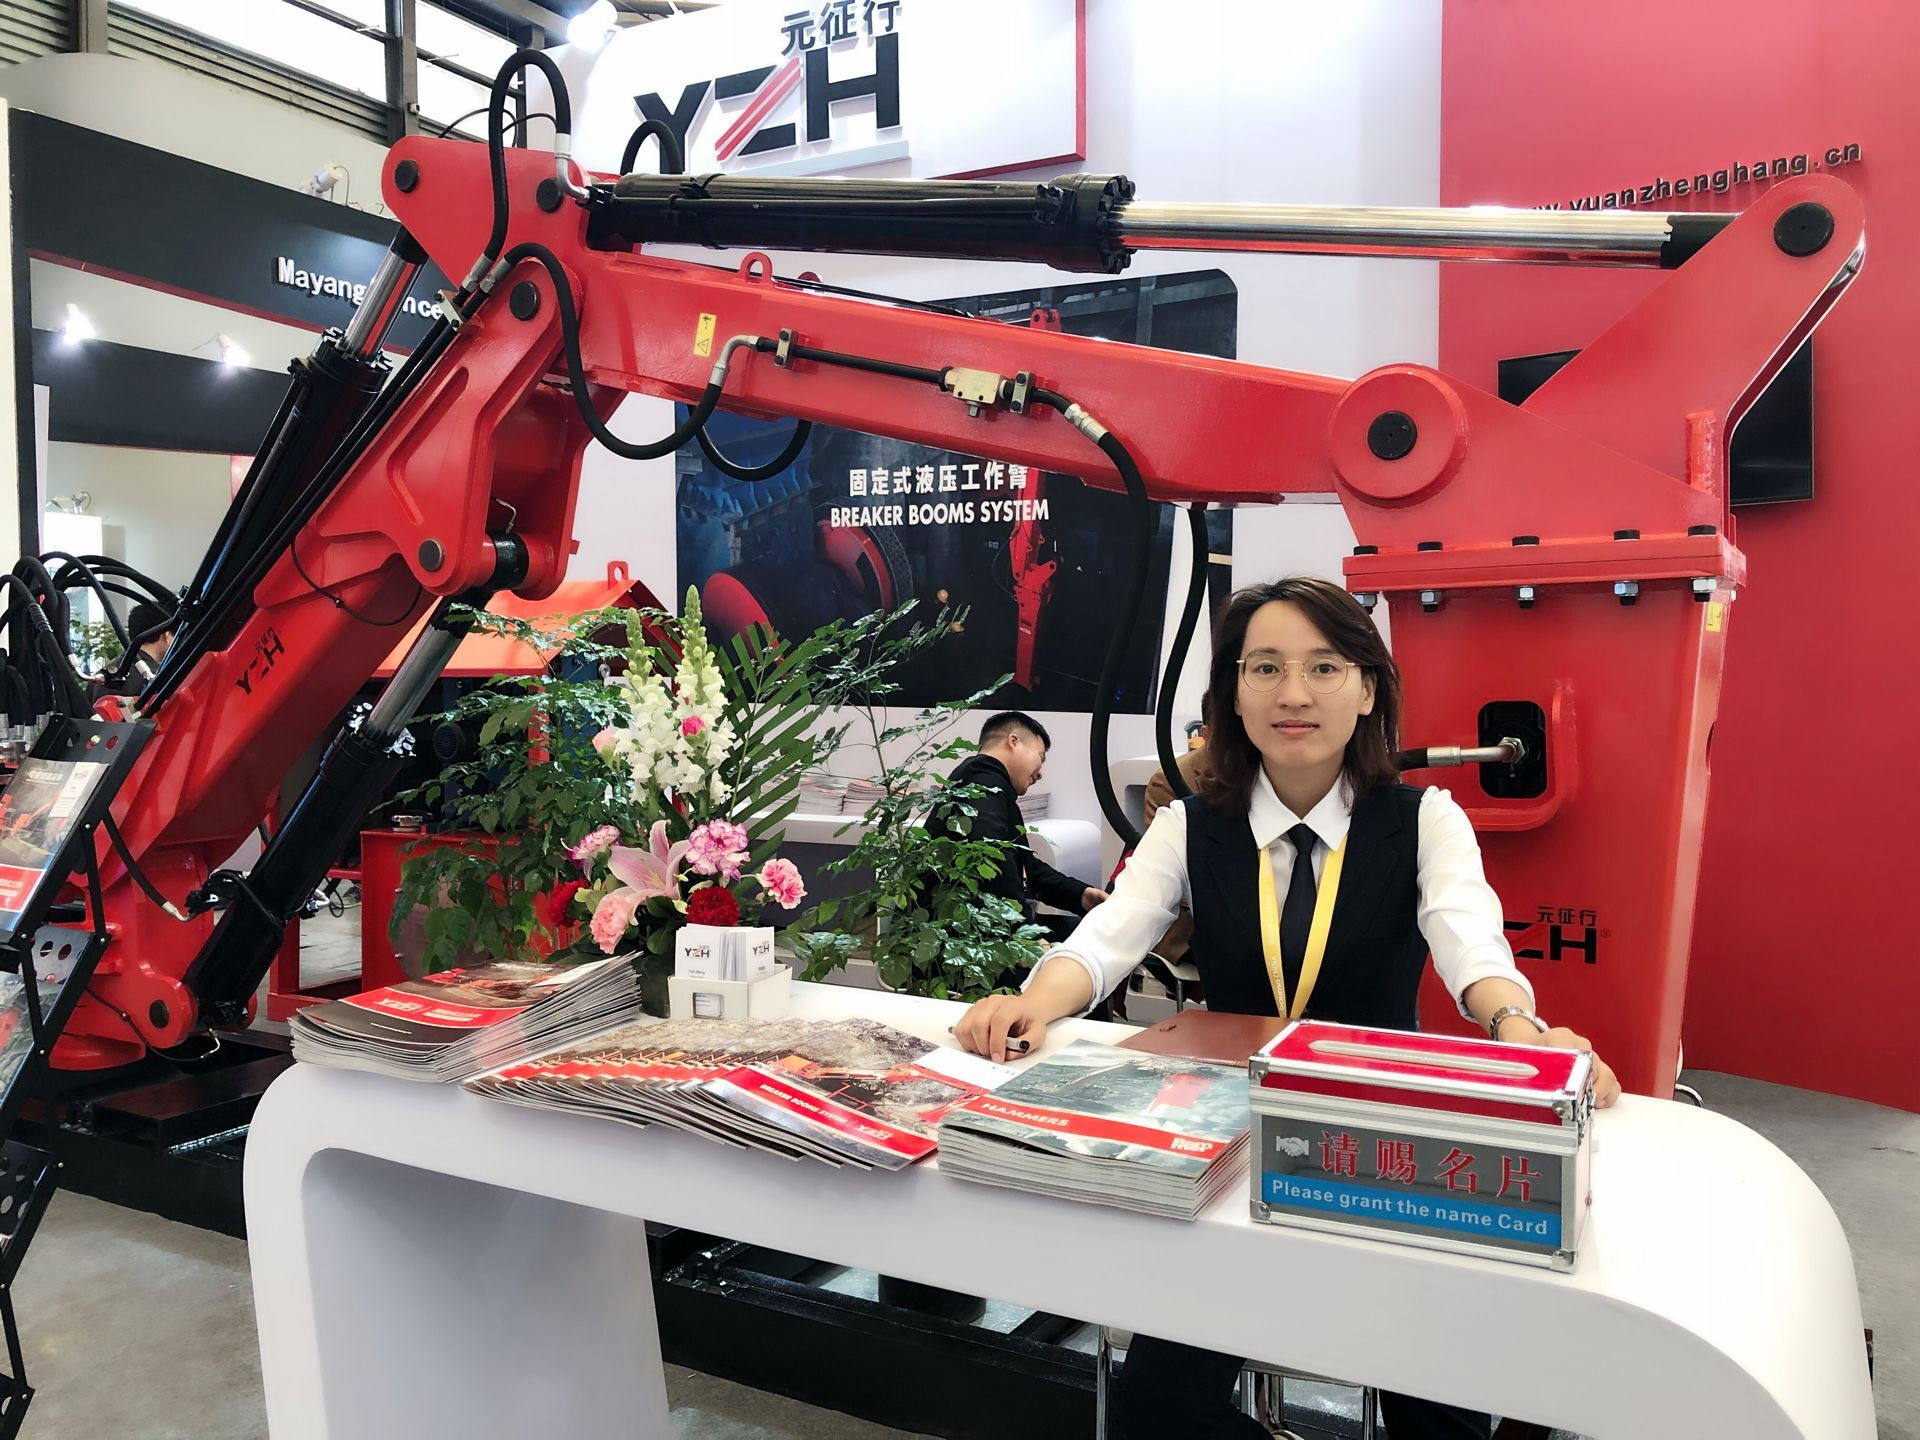 YZH Brand Breaker Booms System Was Showcased At The Bauma CHINA Exhibition